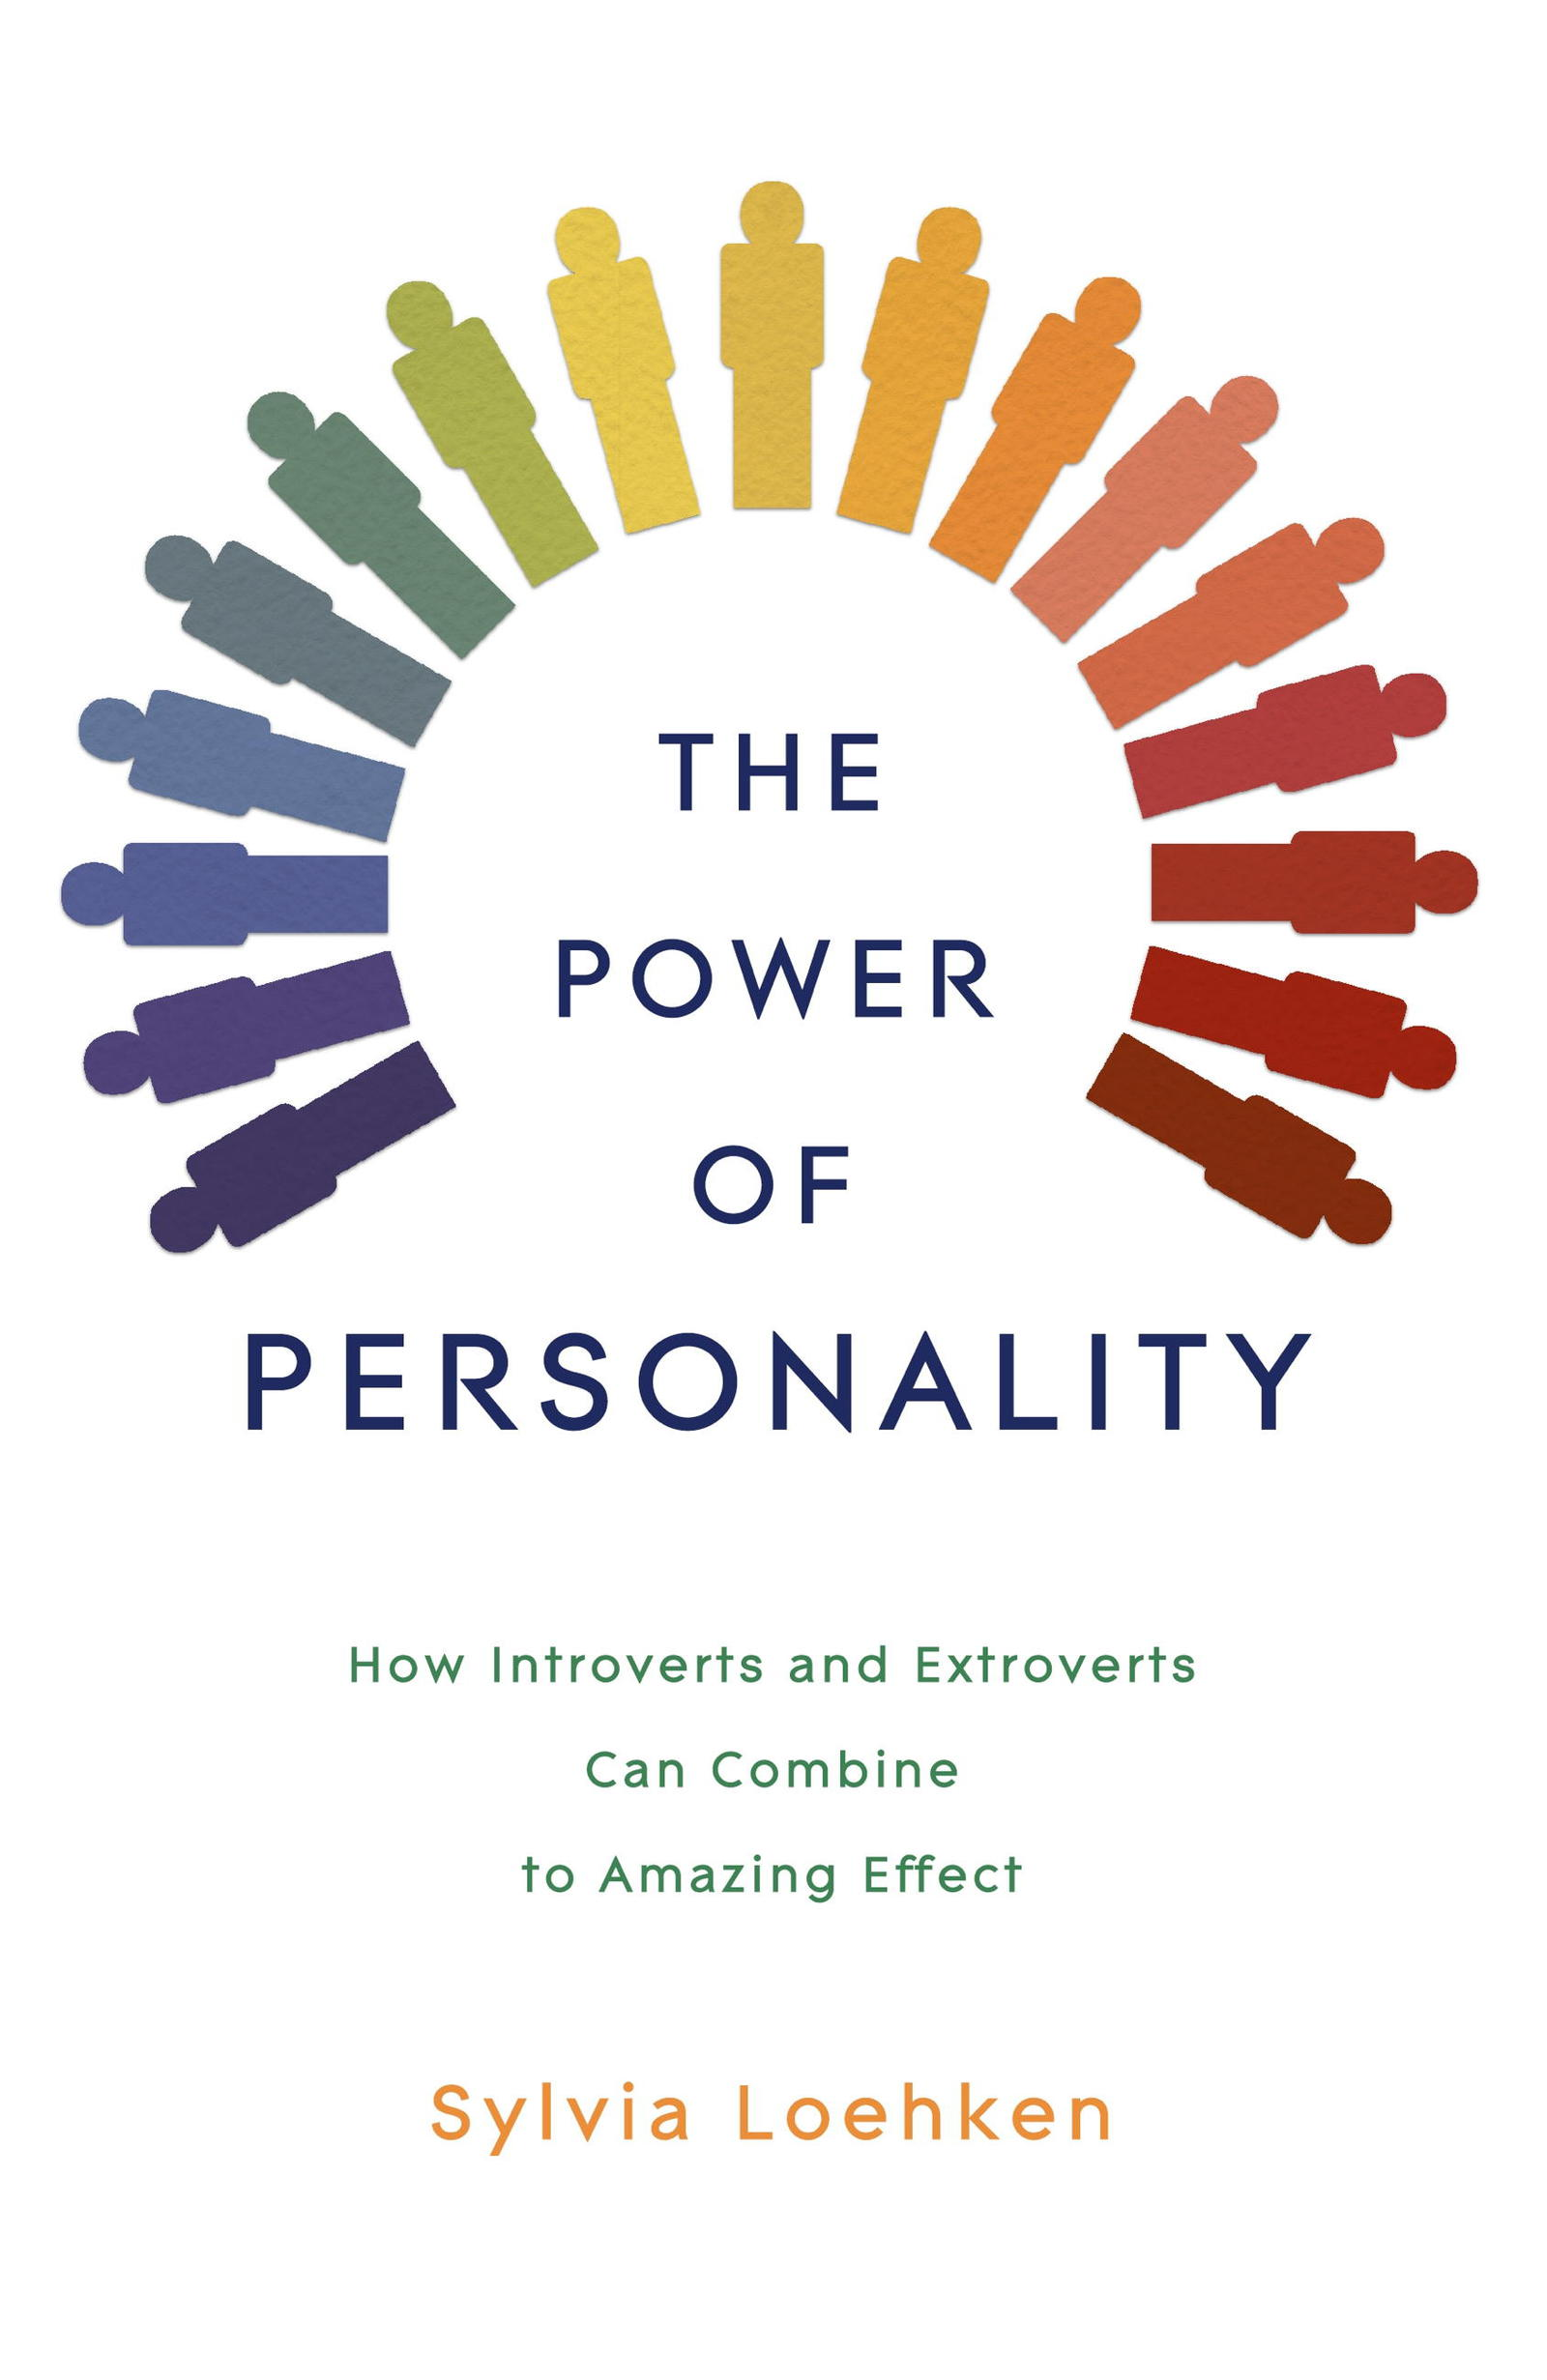 The Power of Personality